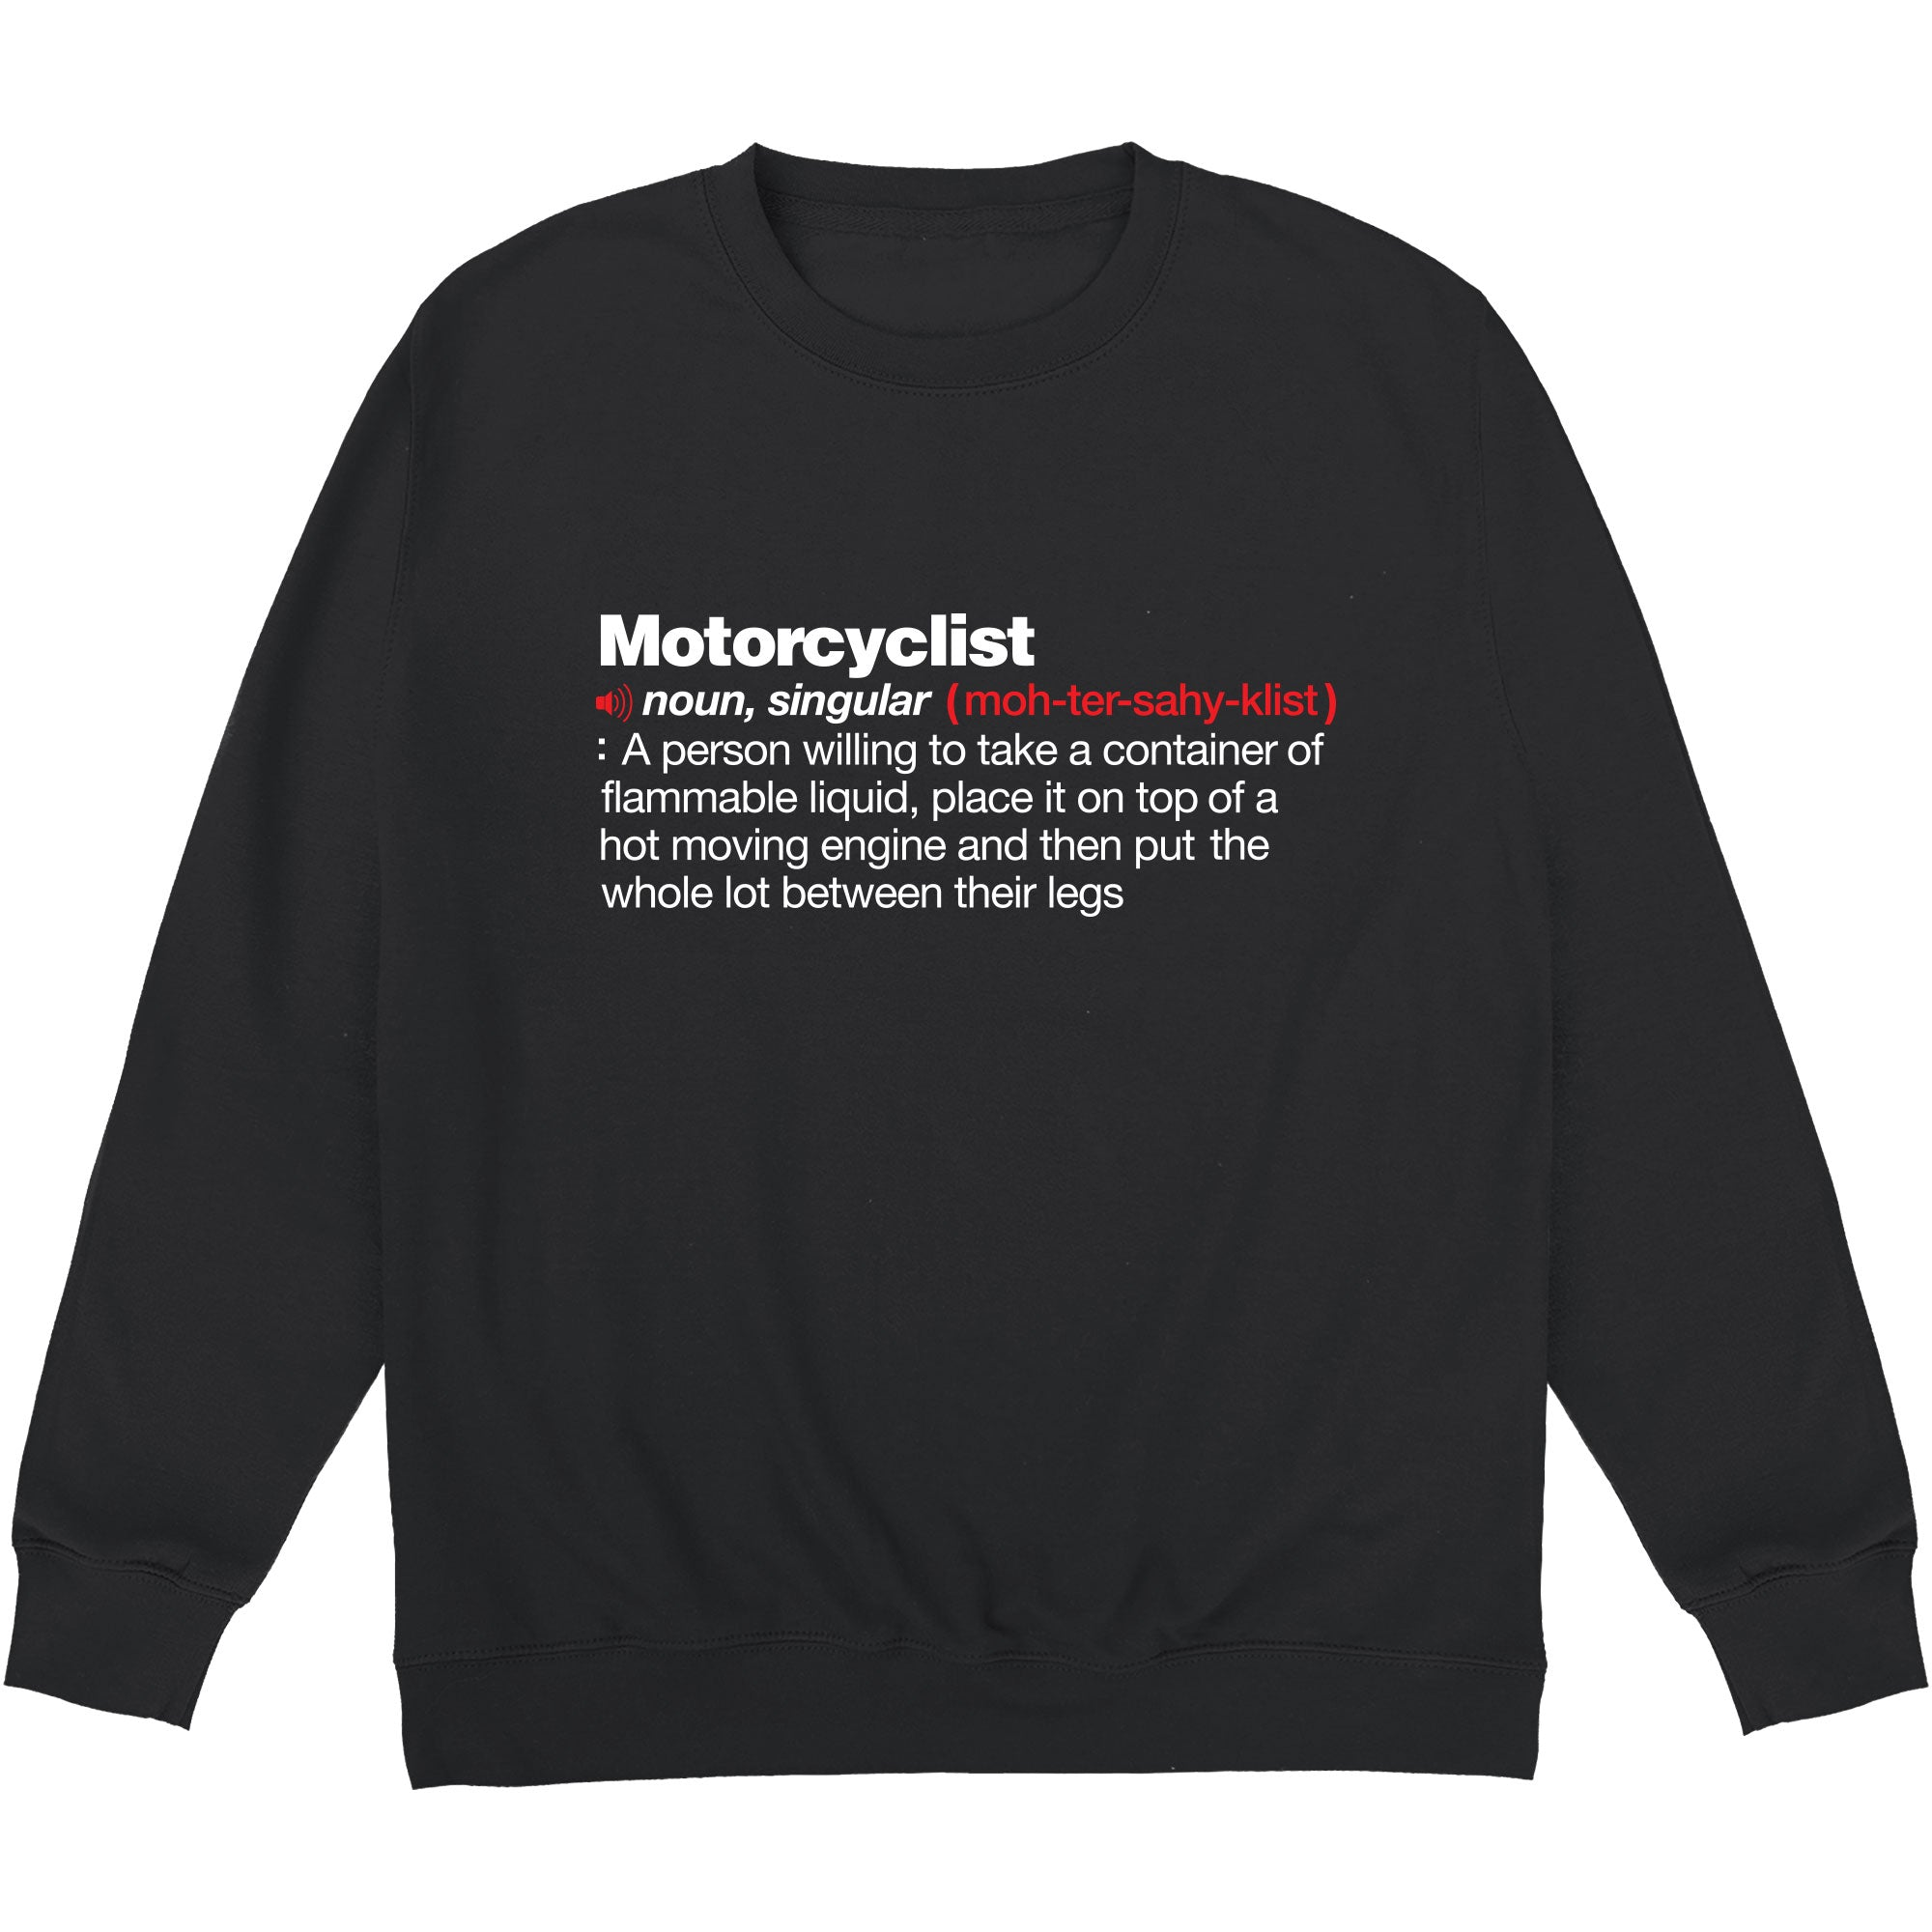 CHEAP Motorcyclist Definition Sweatshirt 24322677221 – Clothing Accessories